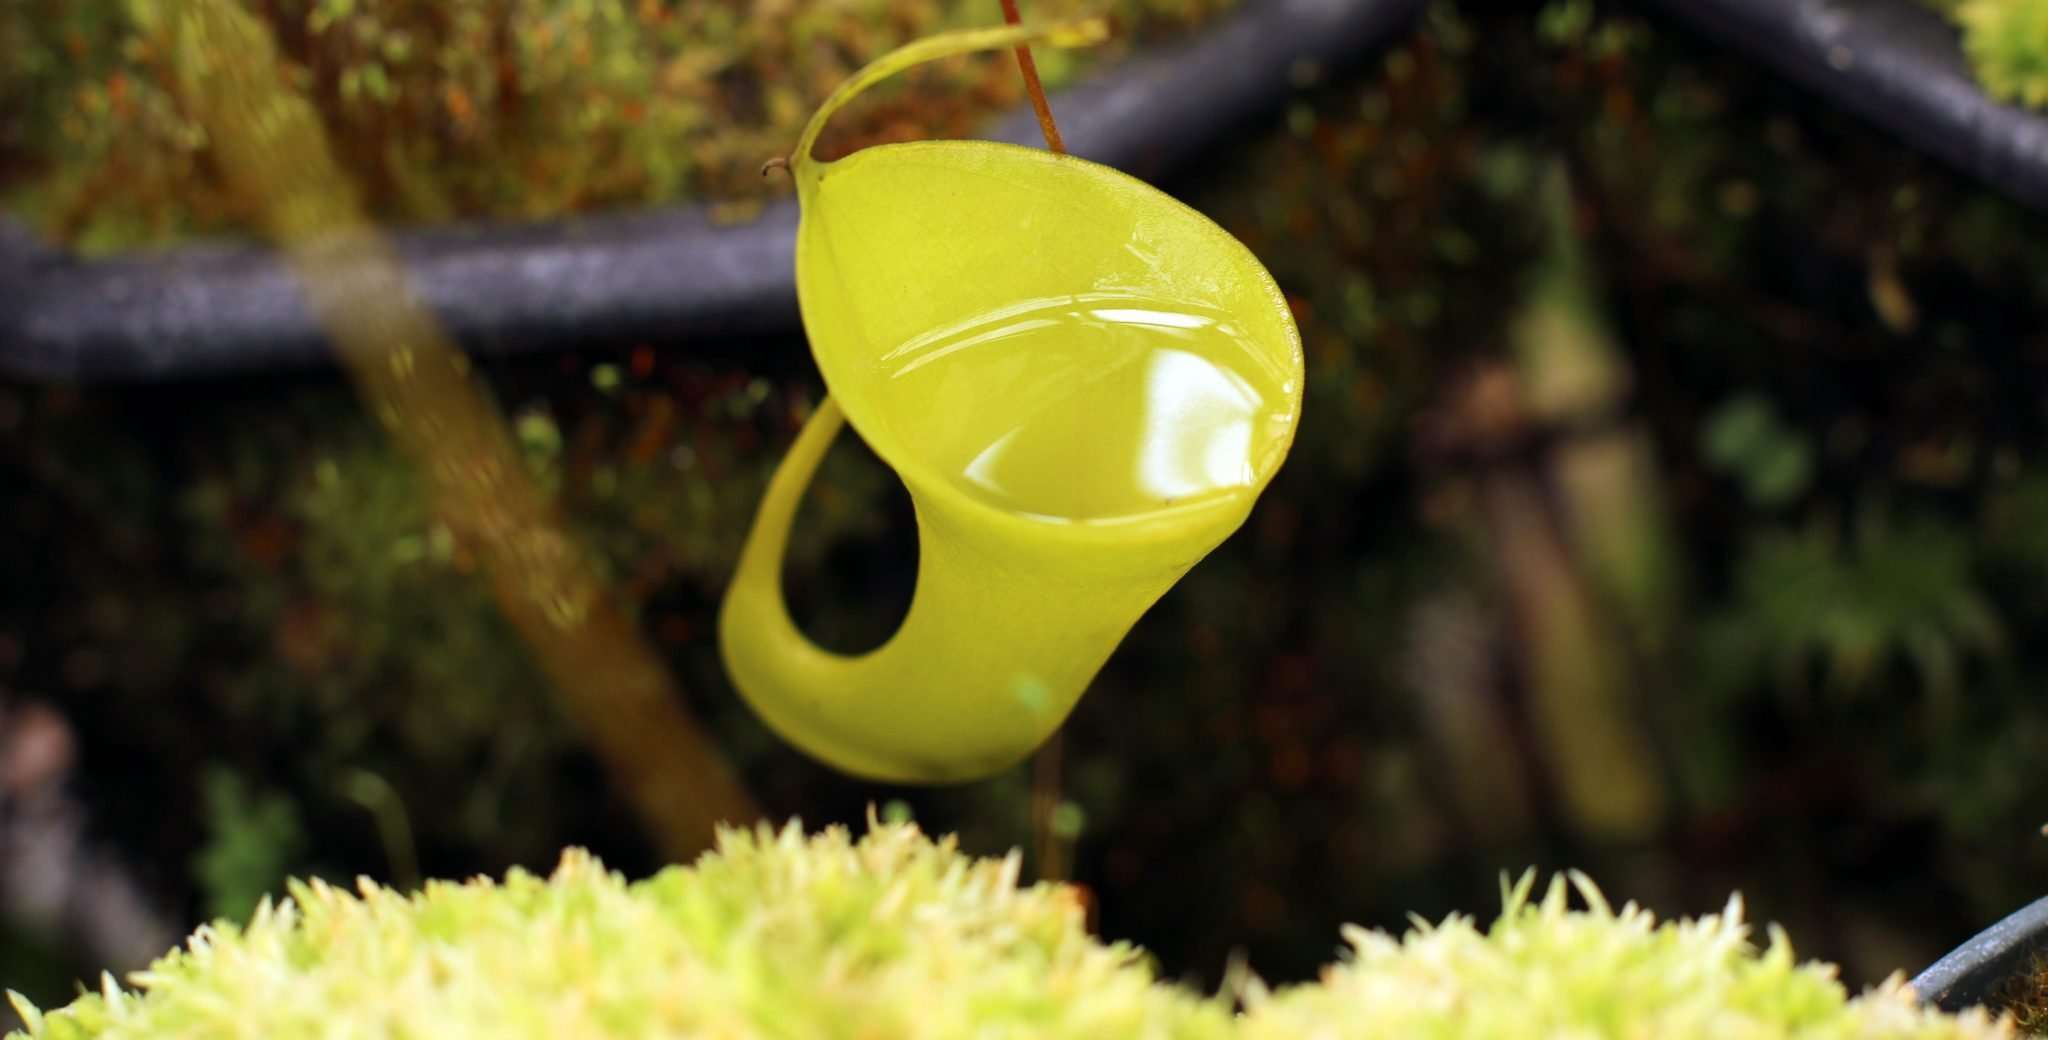 Nepenthes inermis pitcher filled with water